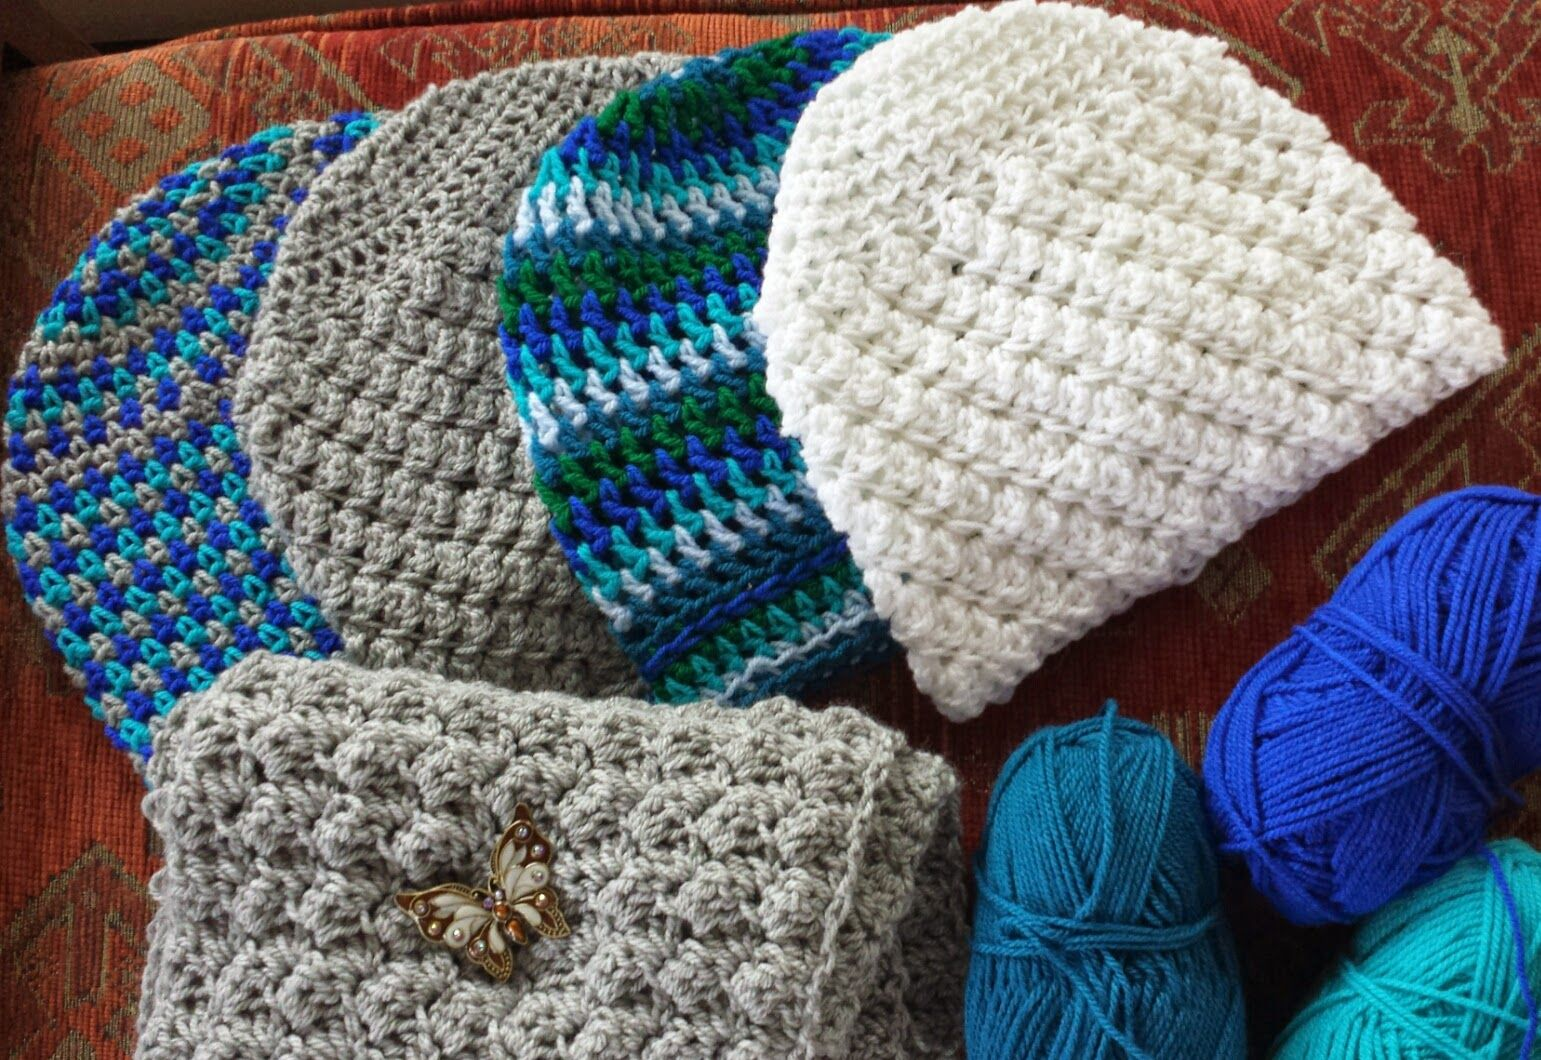 Hats and scarf in blanket stitch. Free pattern at lizzihaekelt.blogspot.de